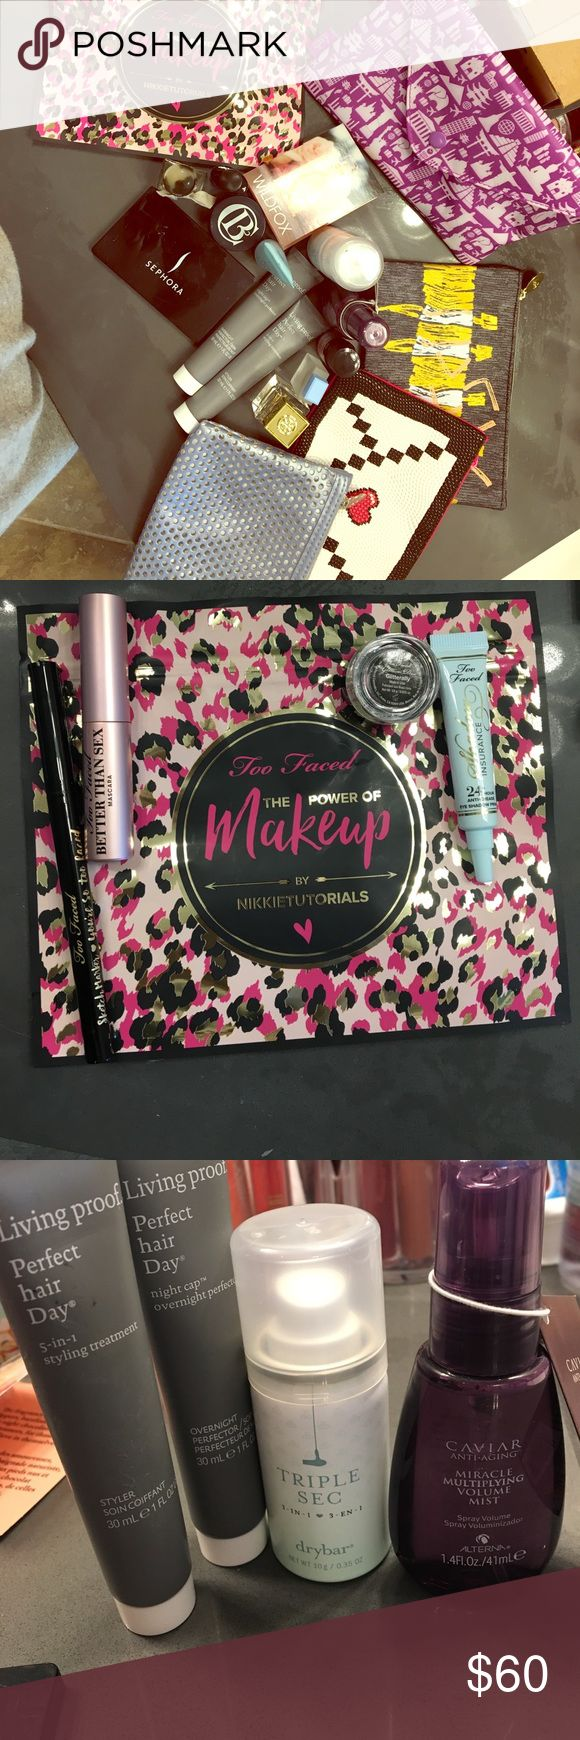 **HUGE BEAUTY BUNDLE** Everything from hair care to perfume, skin care to makeup bags, including **LIMITED EDITION** unused Power of Makeup set from Nikkie Tutorials/Too Faced! 4 limited edition ipsy bags! Brands include Living Proof, Triple Sec, Tory Burch, etc plus a Sephora compact mirror! Makeup